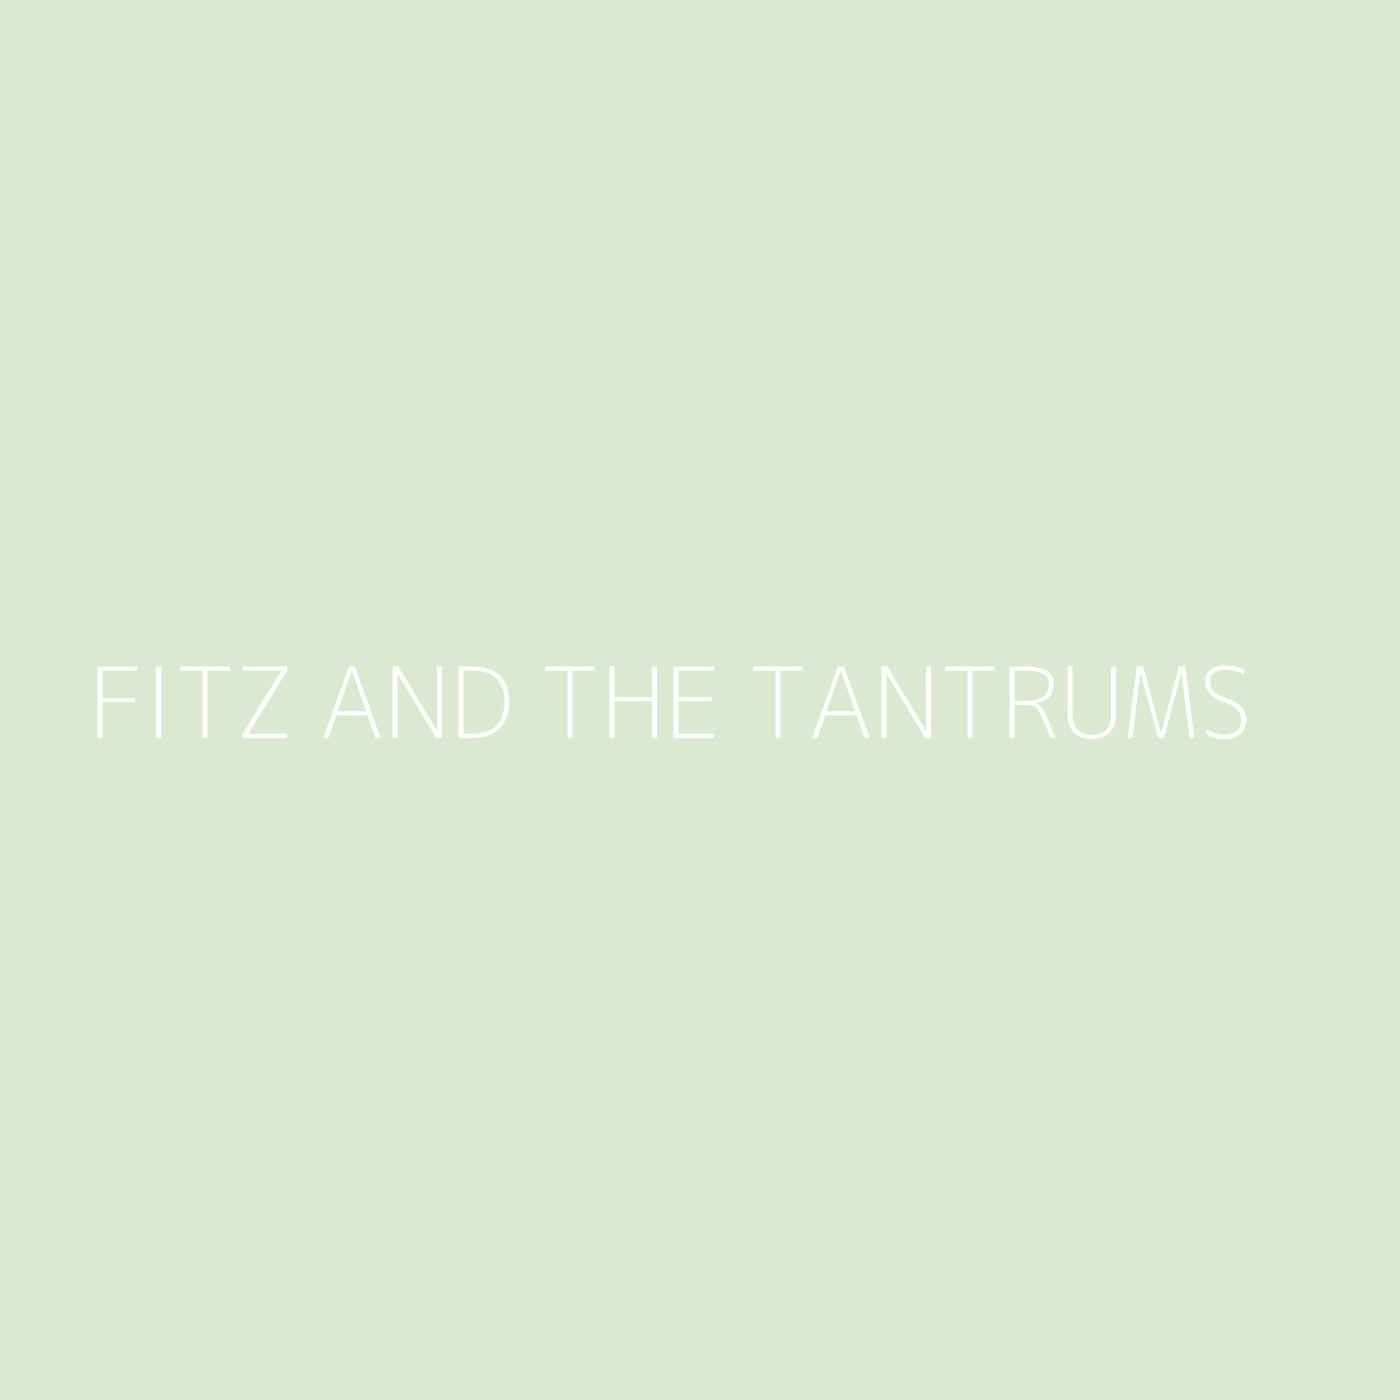 Fitz and The Tantrums Playlist Artwork